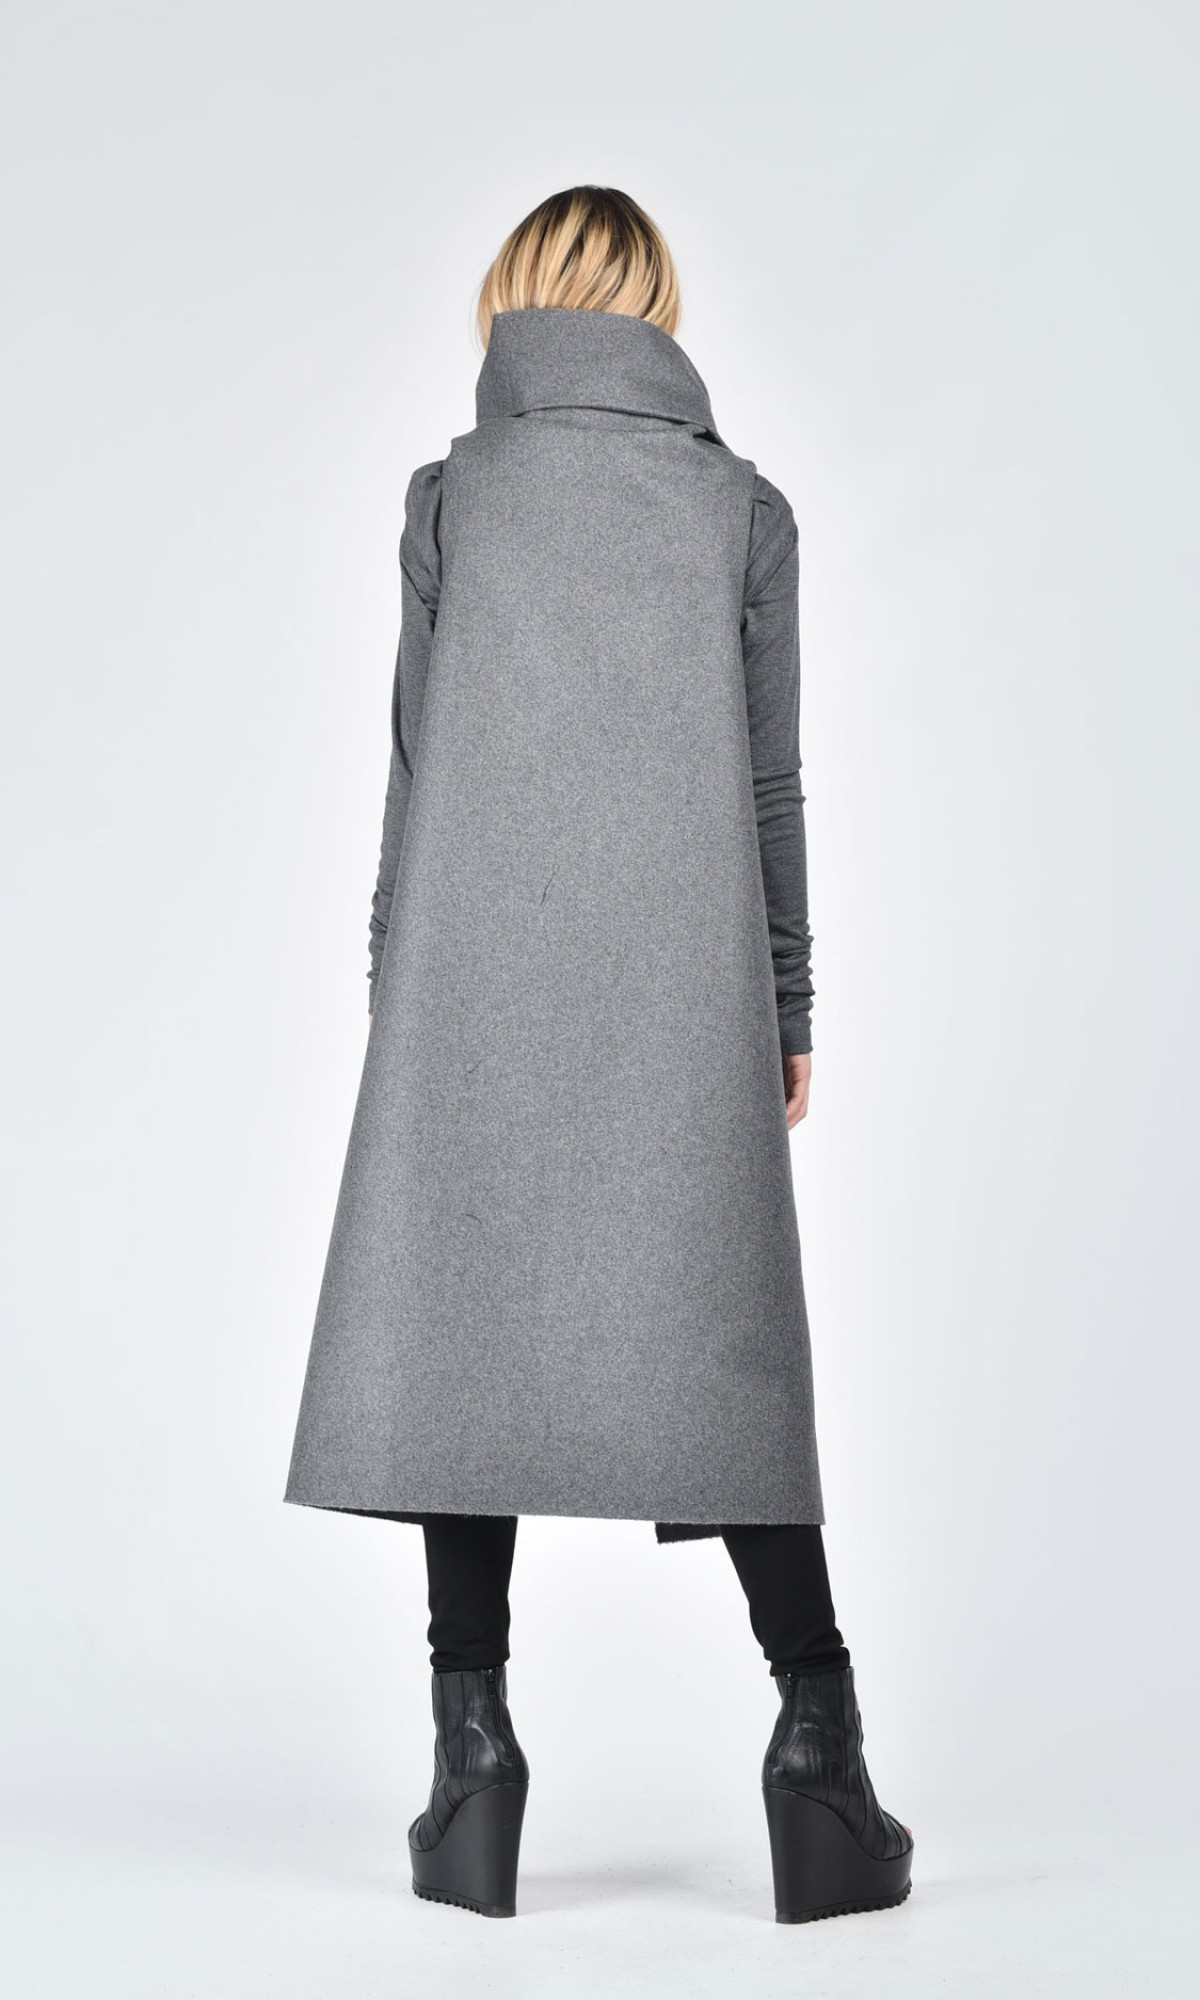 21a0bb44fbfcb Soft Grey High Quality Kasha Fabric Sleeveless Coat